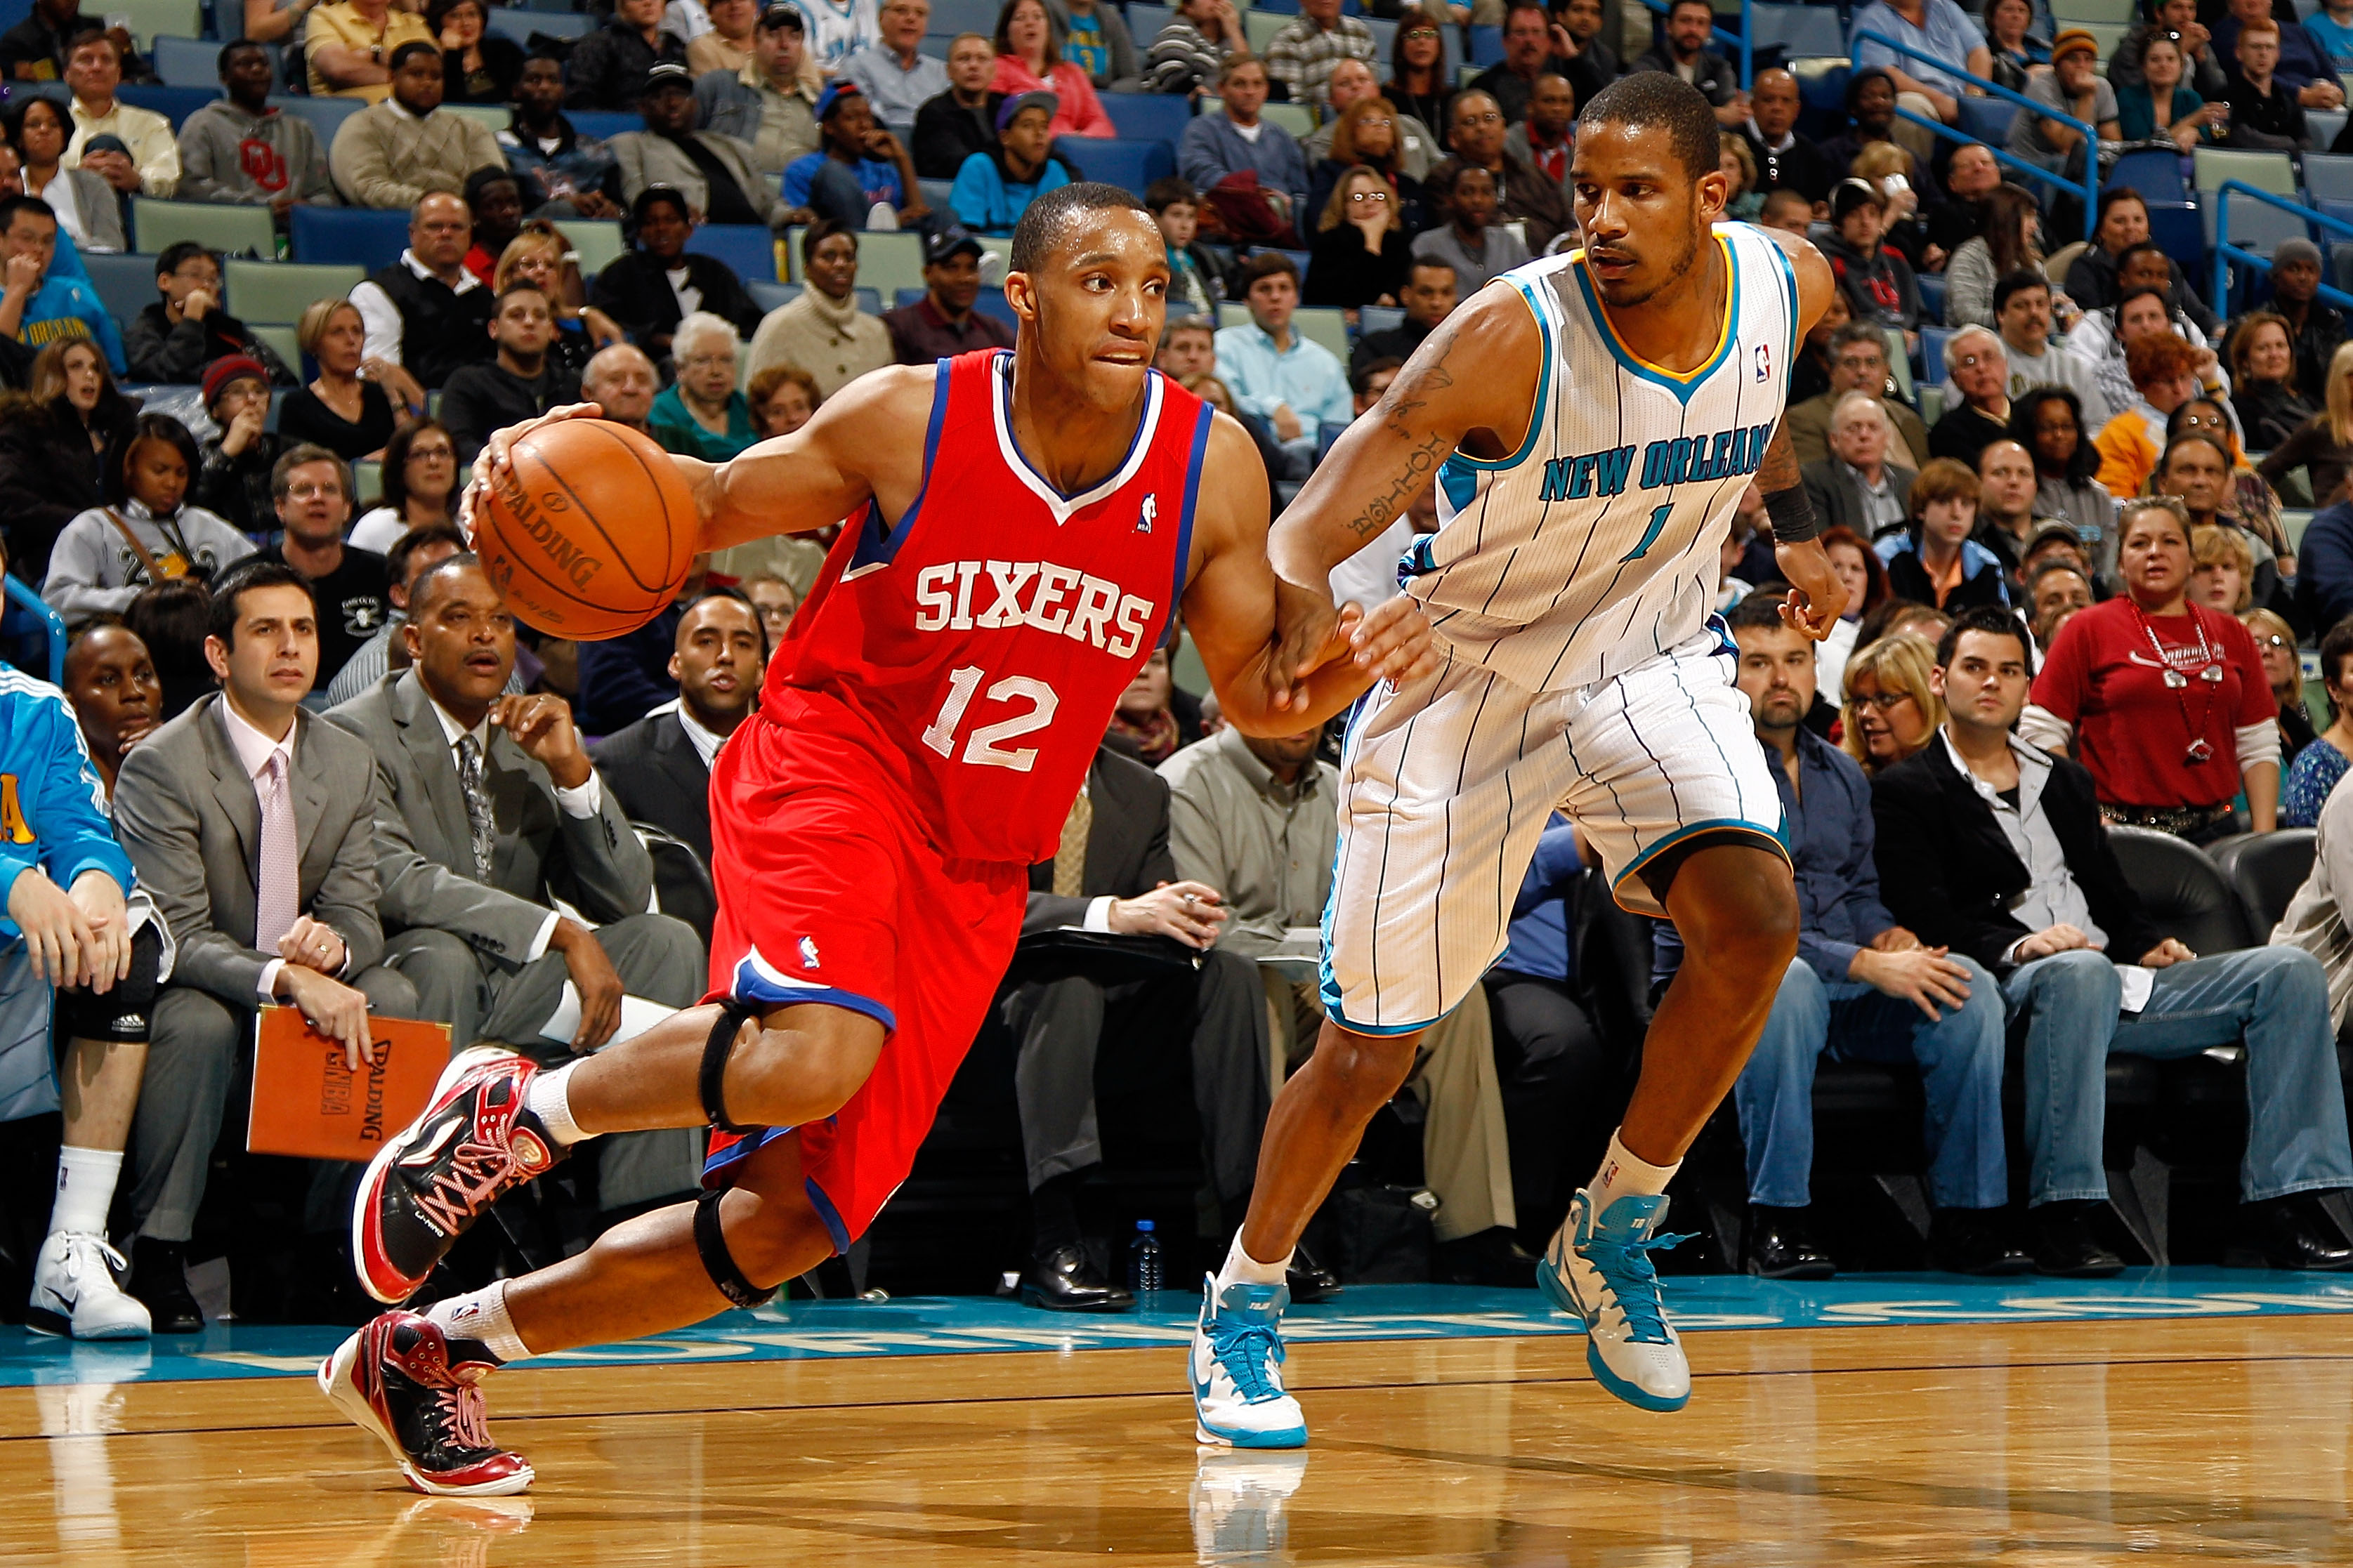 NEW ORLEANS, LA - JANUARY 03:  Evan Turner #12 of the Philadelphia 76ers drives on Trevor Ariza #1 of the New Orleans Hornets in the second half at New Orleans Arena on January 3, 2011 in New Orleans, Louisiana. NOTE TO USER: User expressly acknowledges a